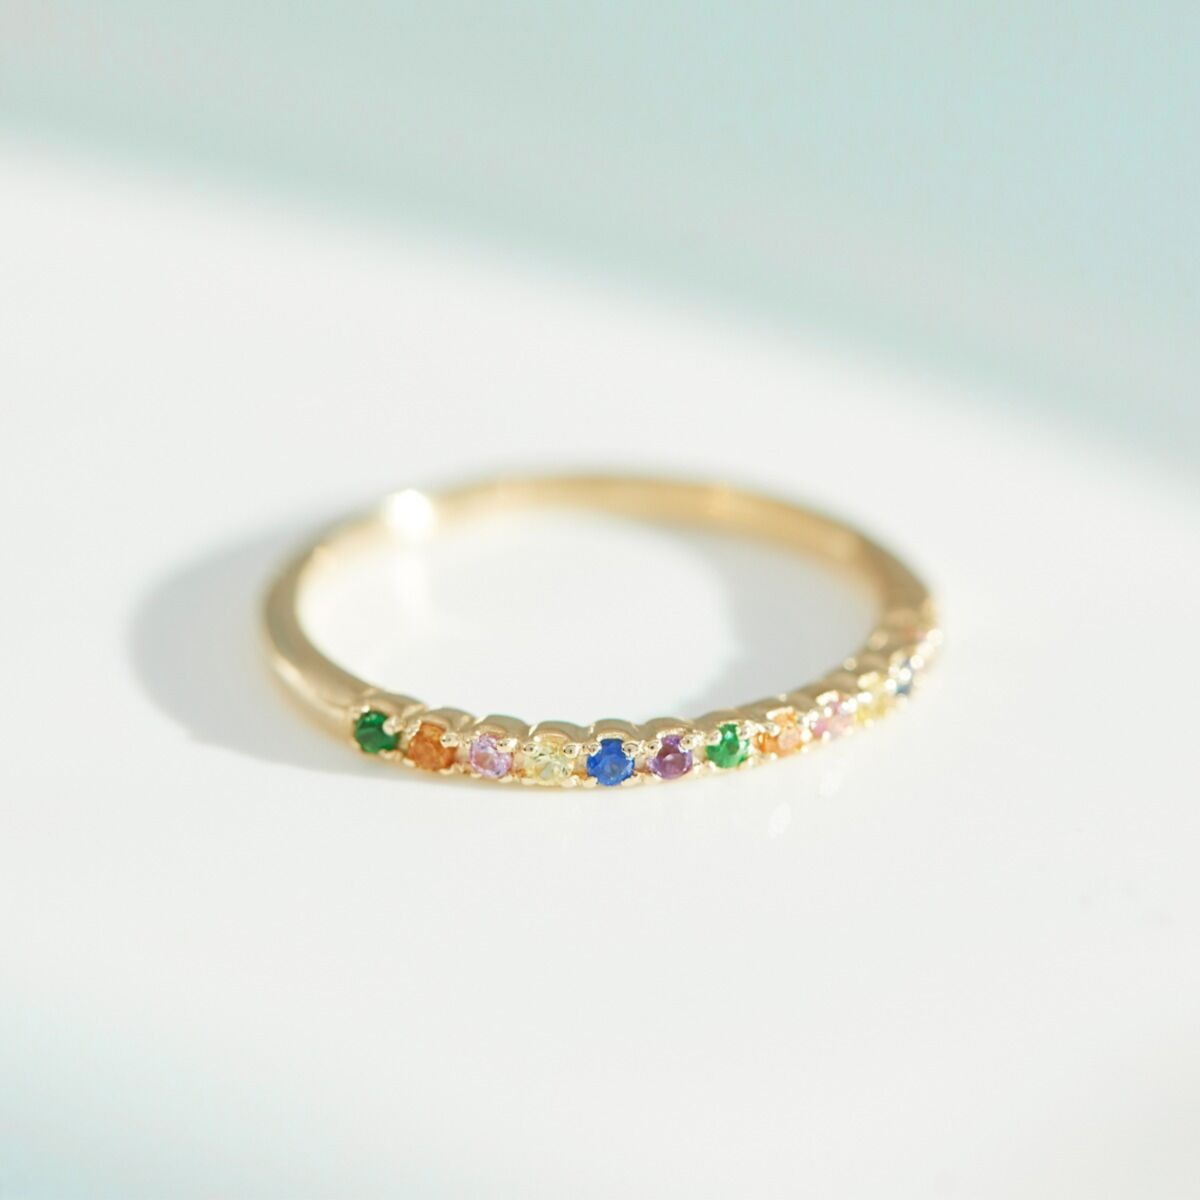 rainbow sapphire engagement ring with yellow gold band